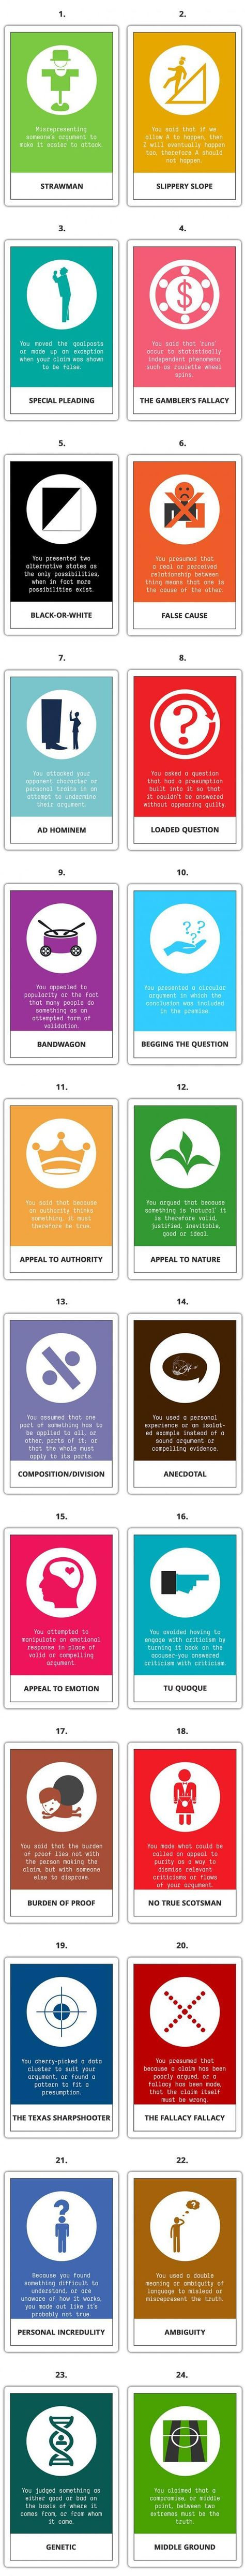 Sumarry of common logical fallacies